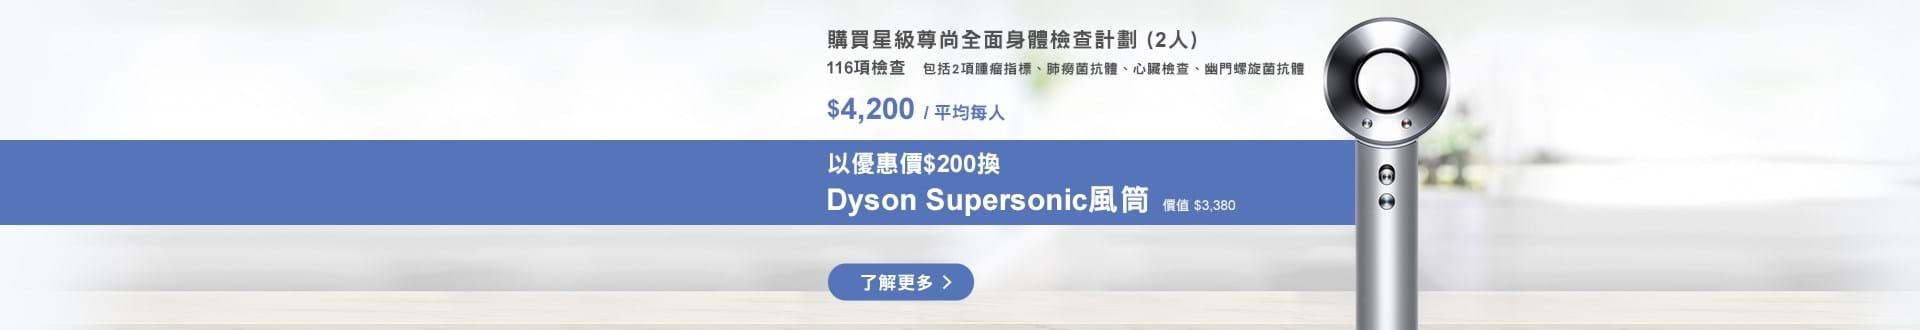 1Mar_DysonSupersonic